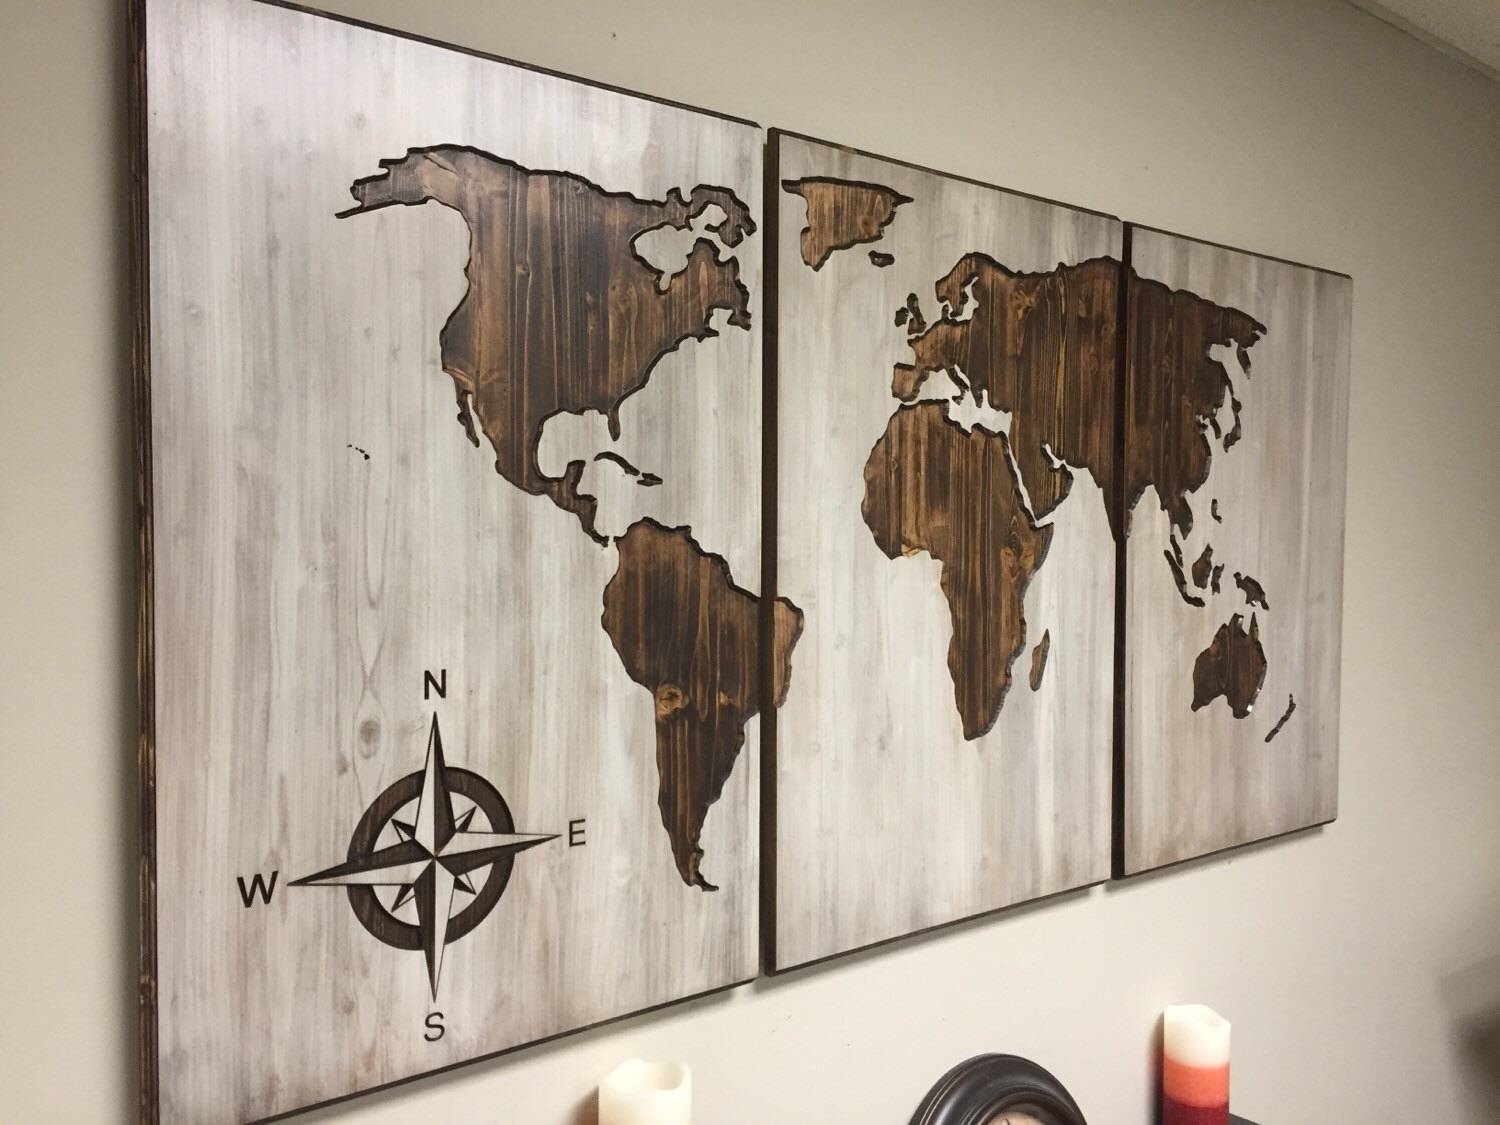 World Map Wood Wall Art Carved Custom Home Decor Wooden Best Of Intended For Most Up To Date Custom Map Wall Art (View 2 of 20)